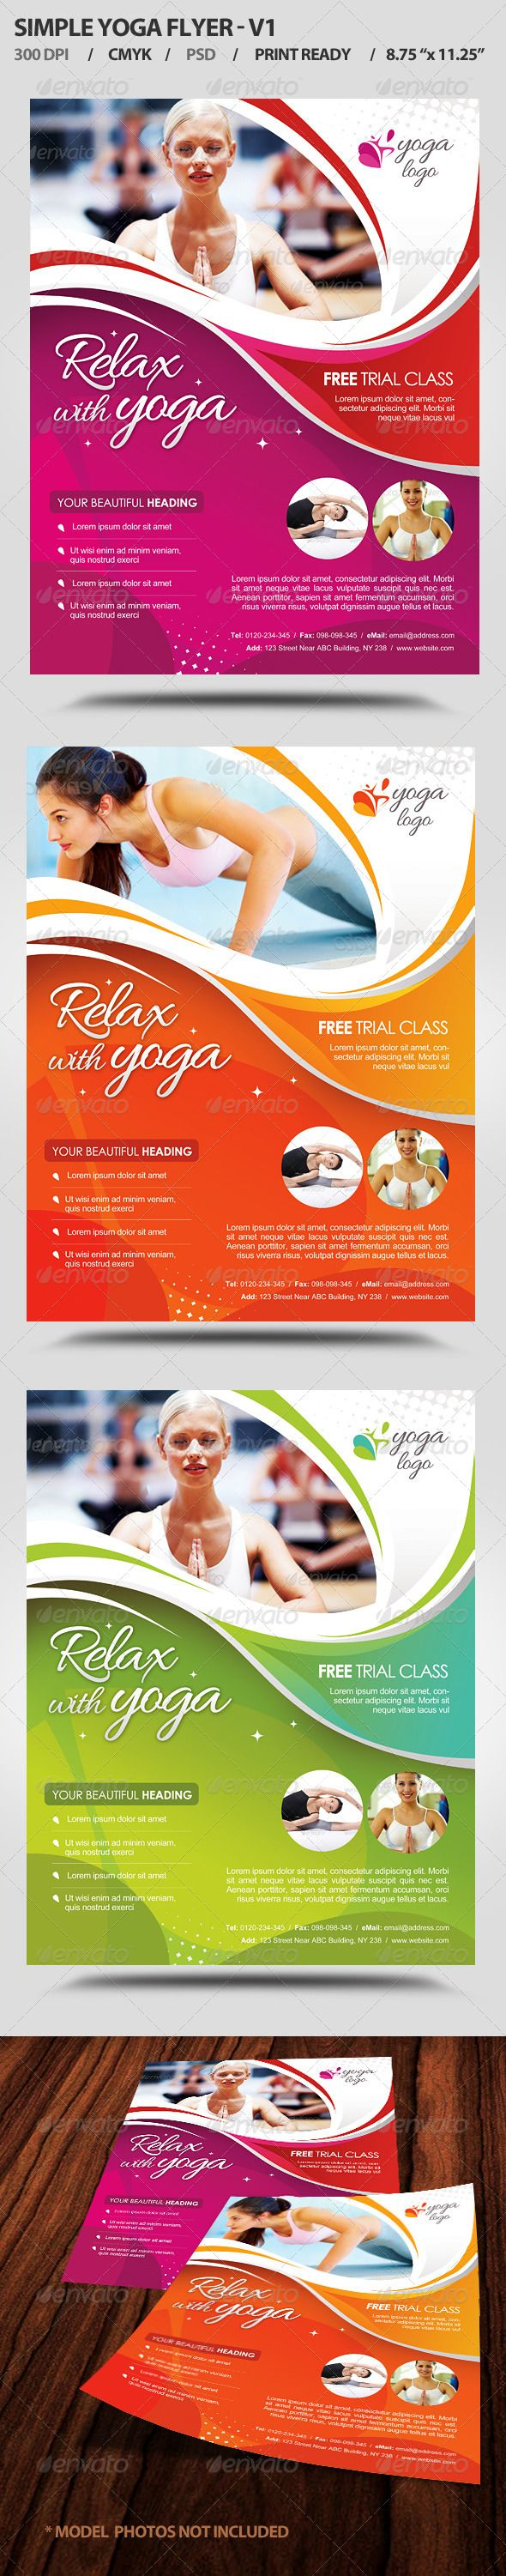 aesthetic flyers template   Mersn proforum co aesthetic flyers template